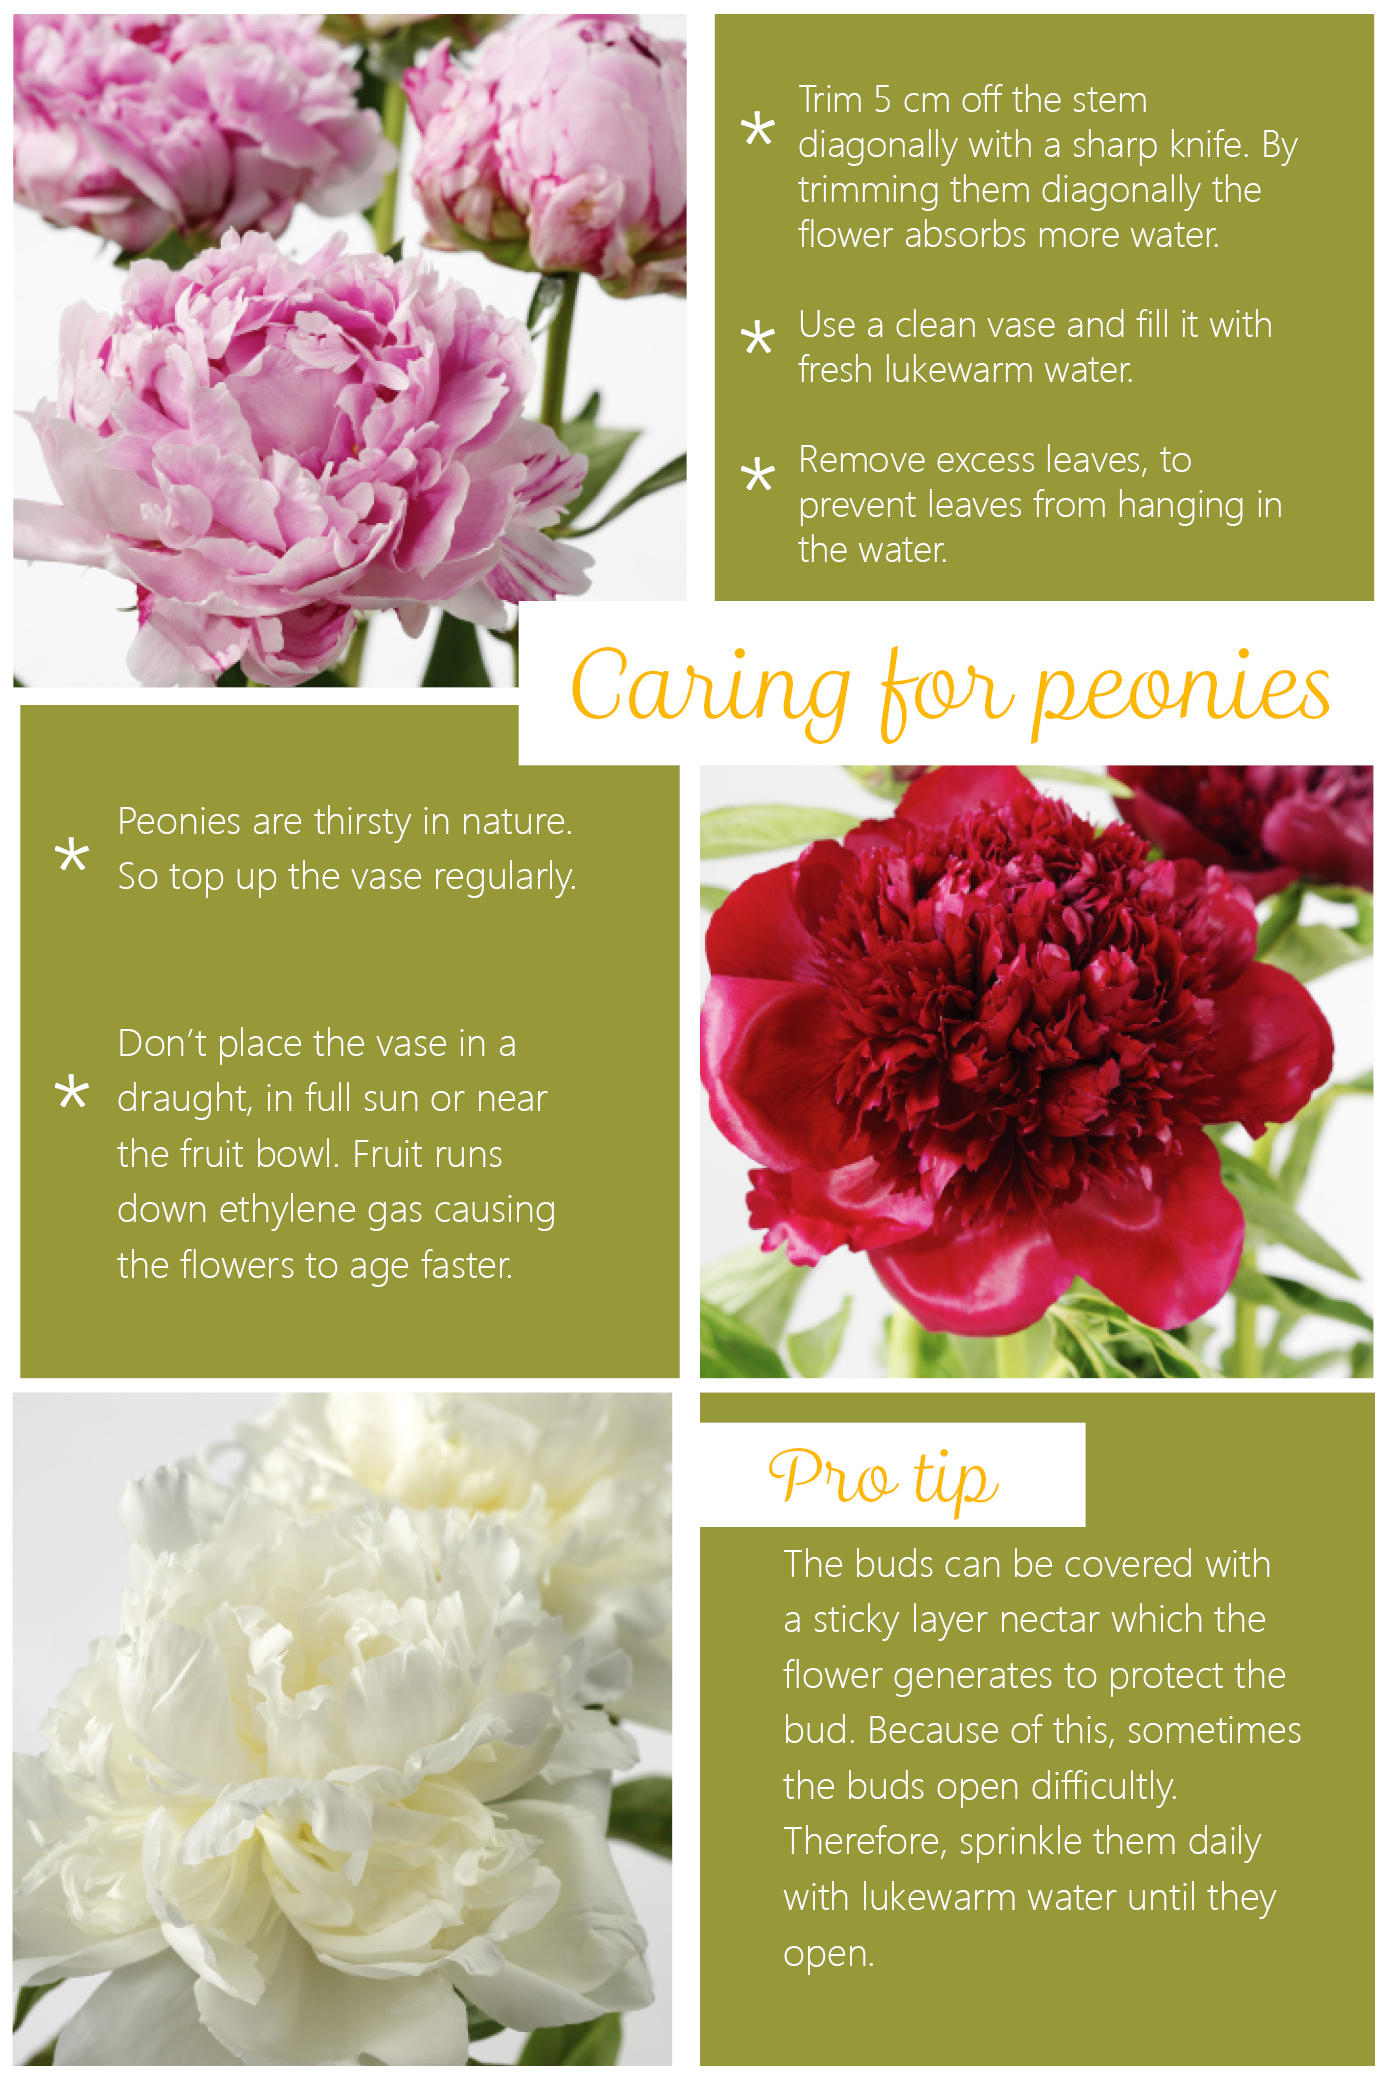 caring for peonies